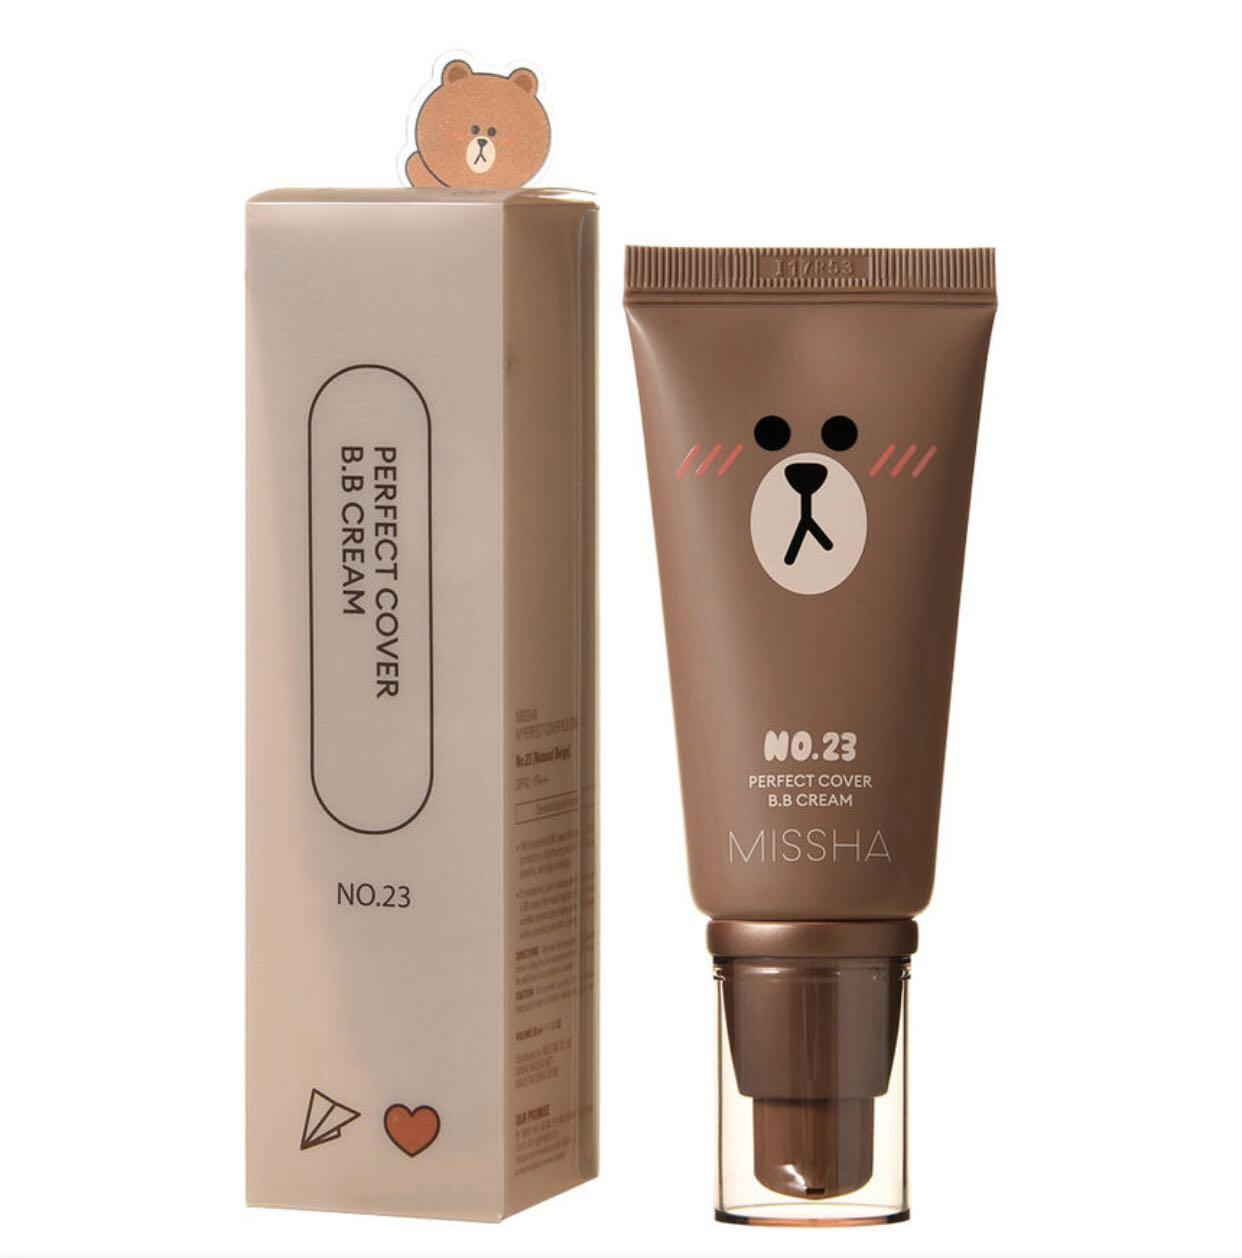 [MISSHA] M Perfect Cover BB Cream (Line Friends Edition) Shade 23